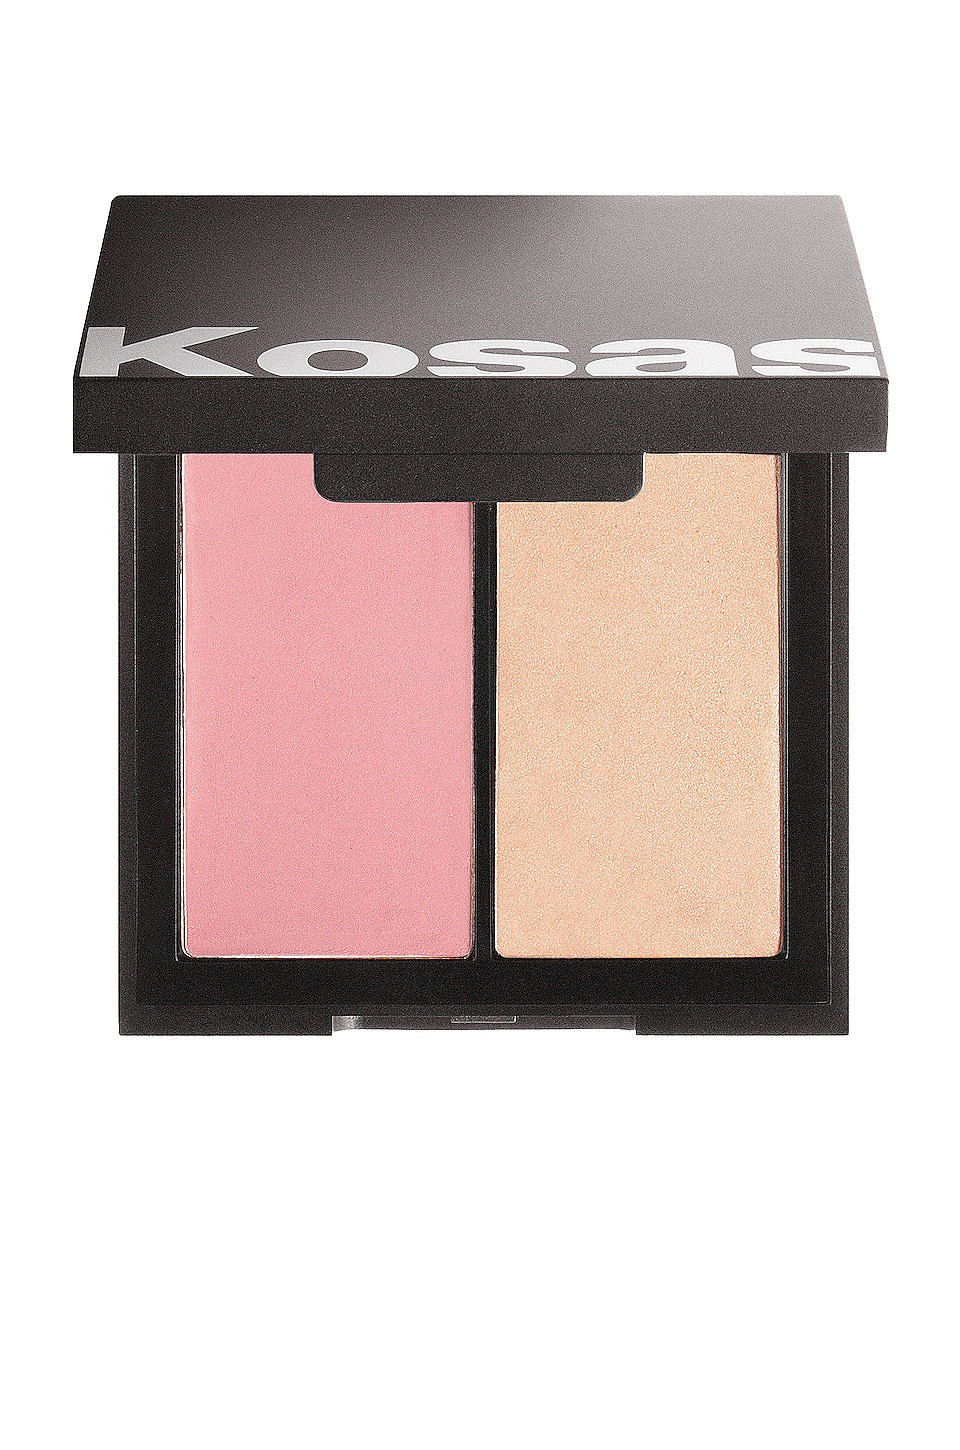 Kosas ILLUMINATEUR ET BLUSH SATURATE